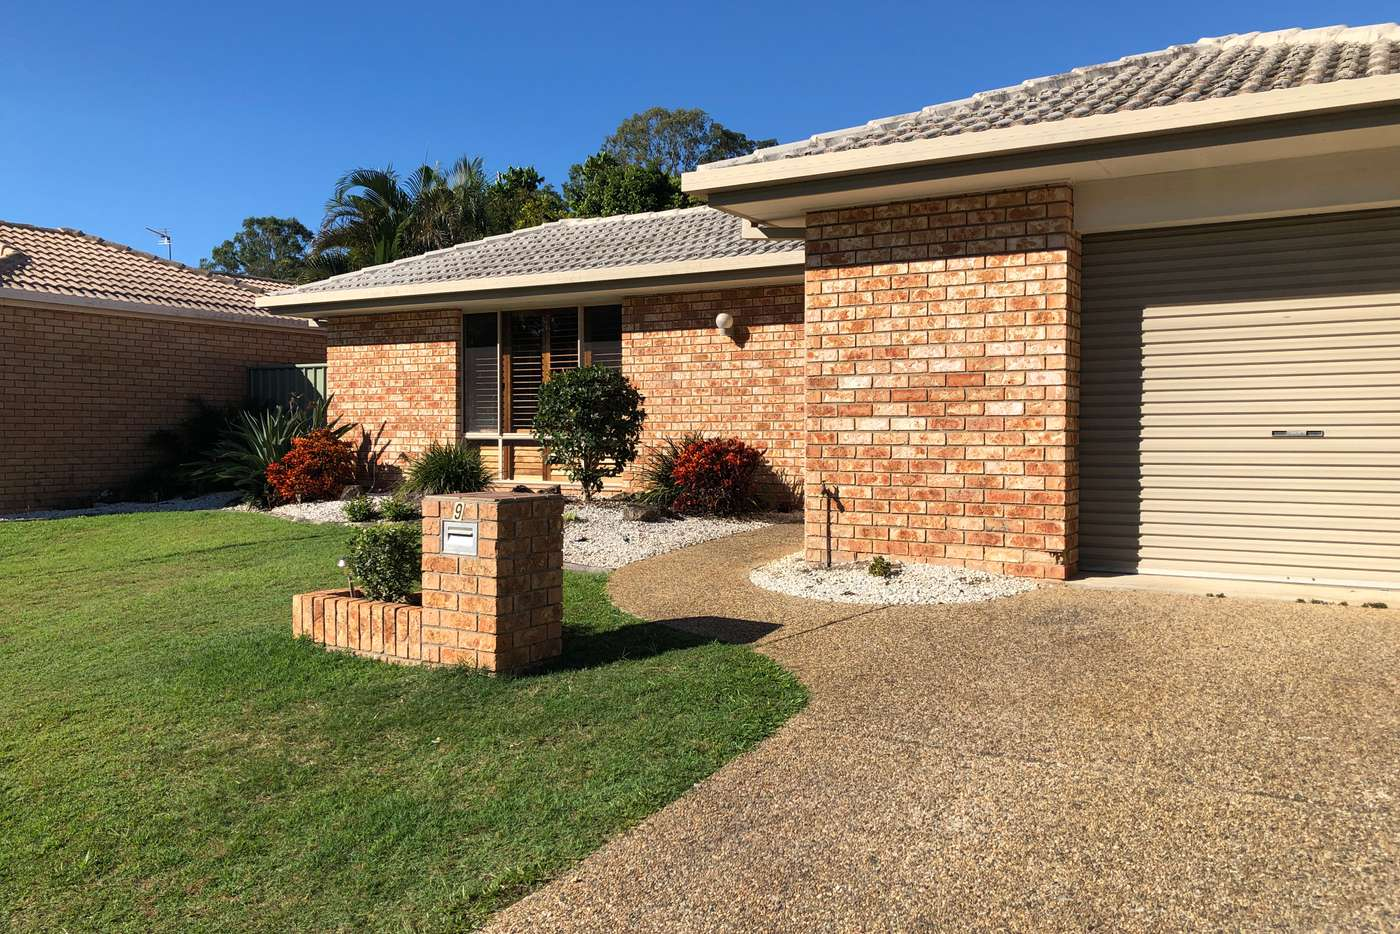 Main view of Homely house listing, 9 Pentland Court, Helensvale QLD 4212